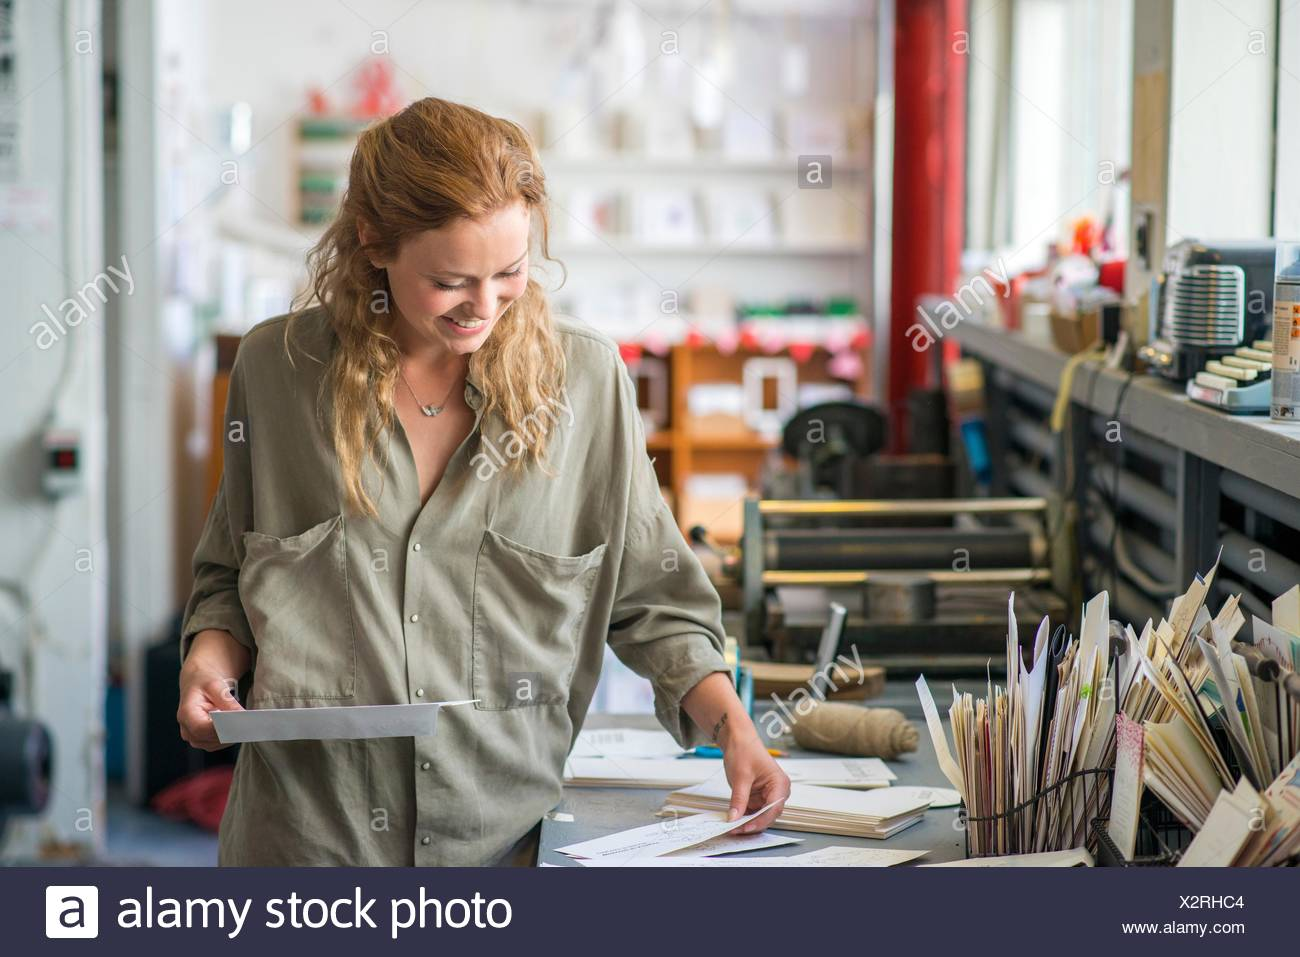 Female print designer examining designs in workshop - Stock Image